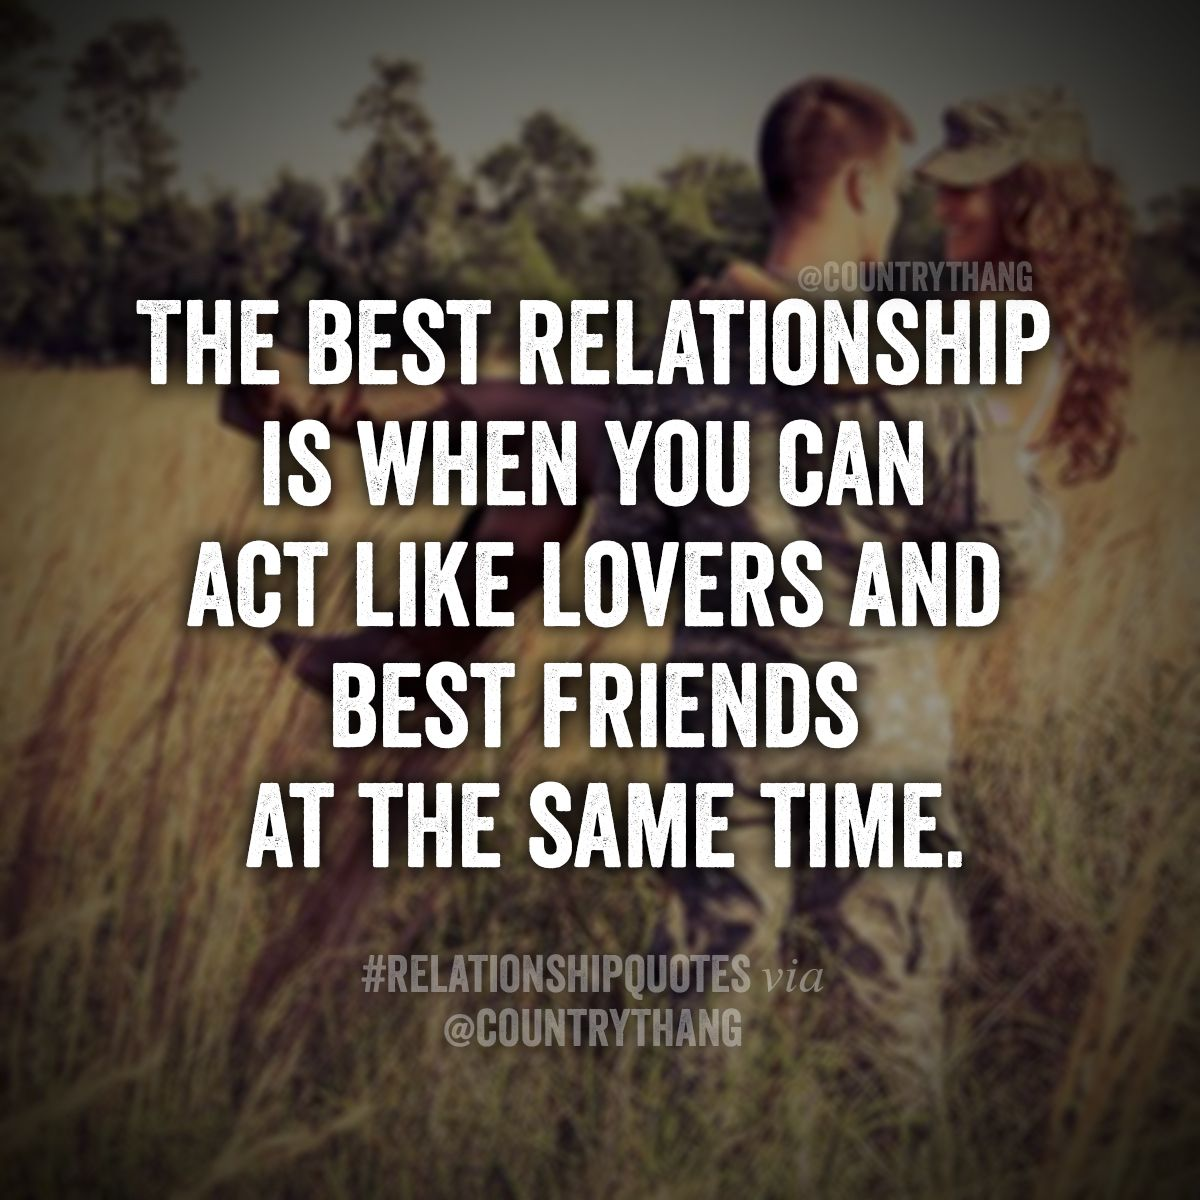 Quotes About Friendship Lovers The Best Relationship Is When You Can Act Like Lovers And Best